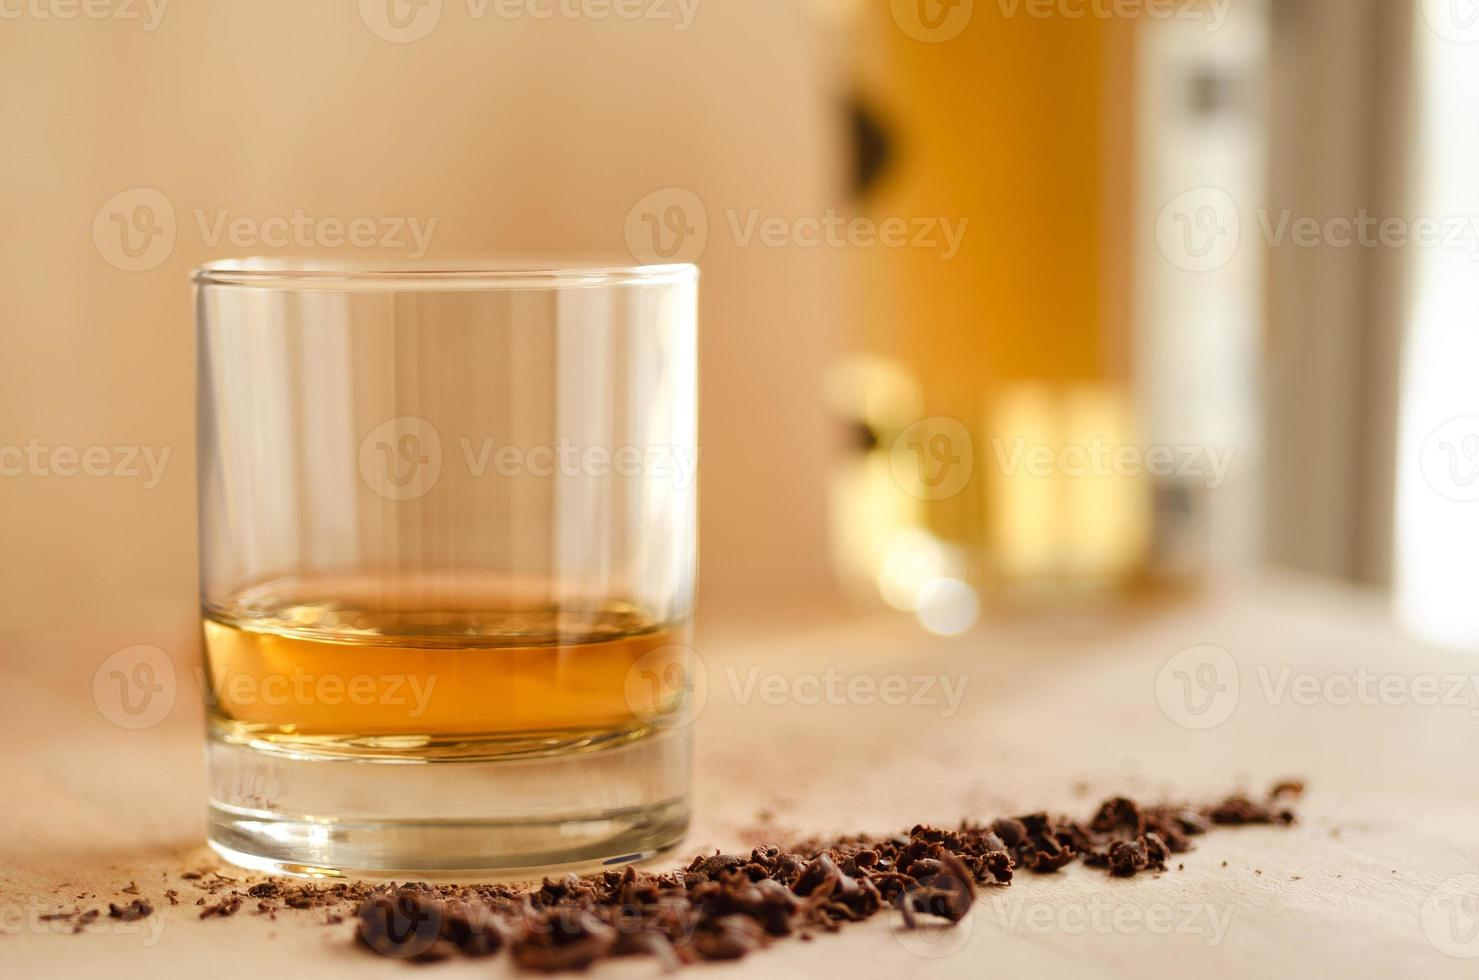 whisky y chocolate foto